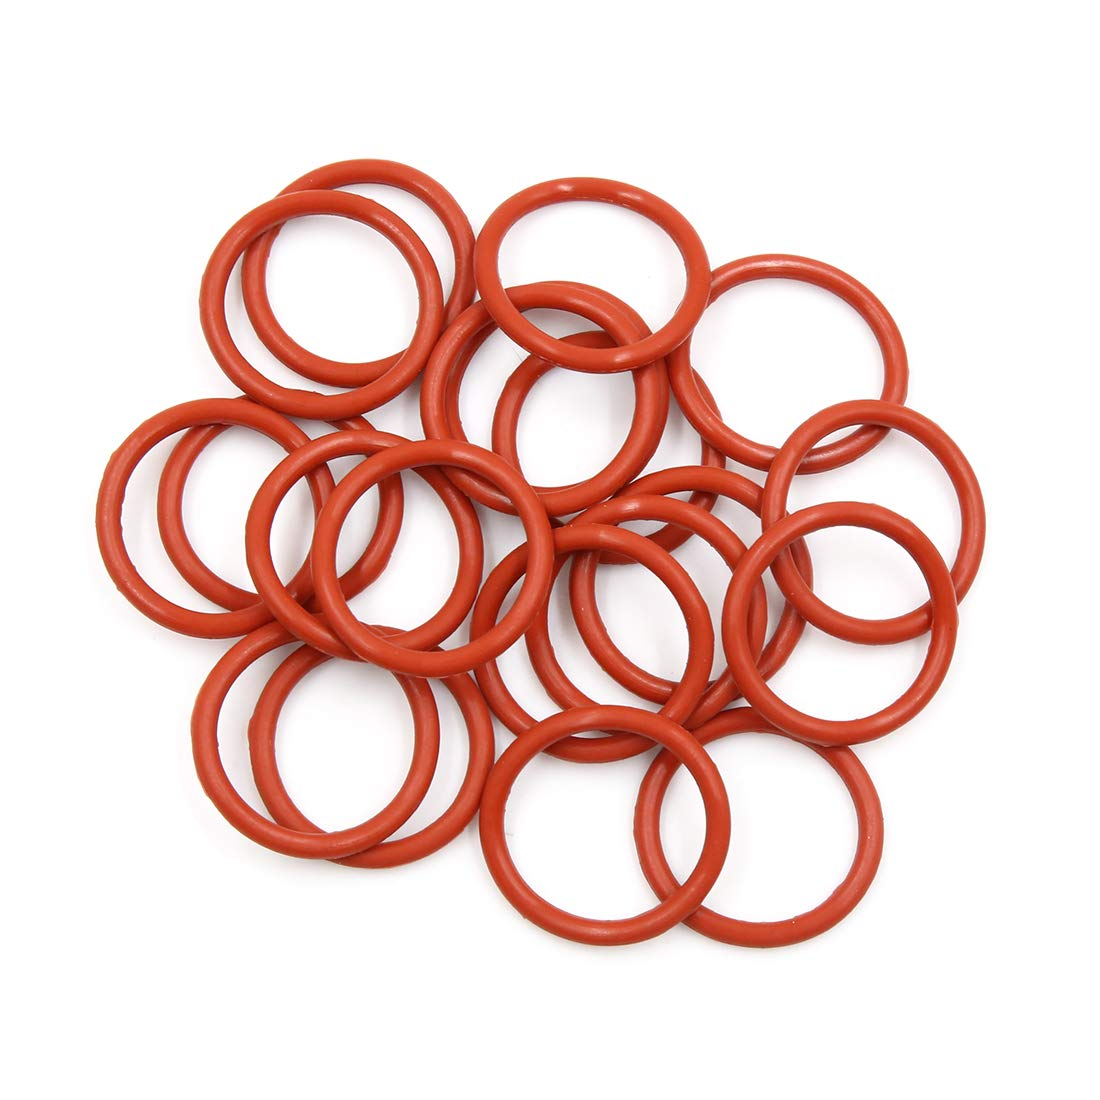 X AUTOHAUX 10pcs White Silicone Rubber O-Ring VMQ Seal Gasket Washer for Car 70mm x 3.1mm